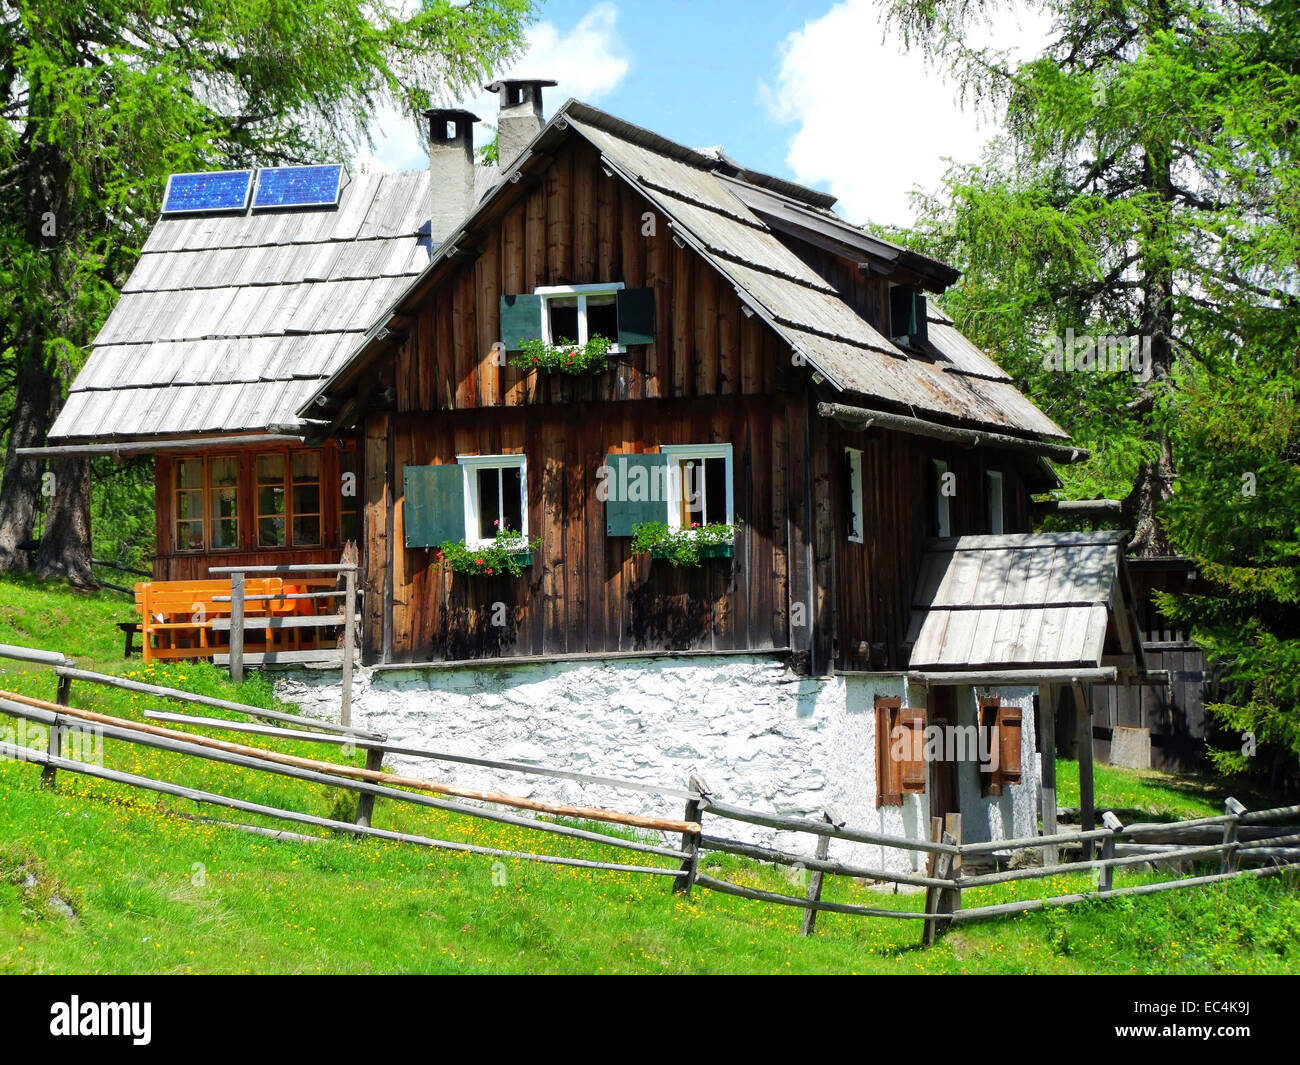 ALM huts hut on the mountain, Rennweg-Katschberg holidays, Bacher - Stock Image